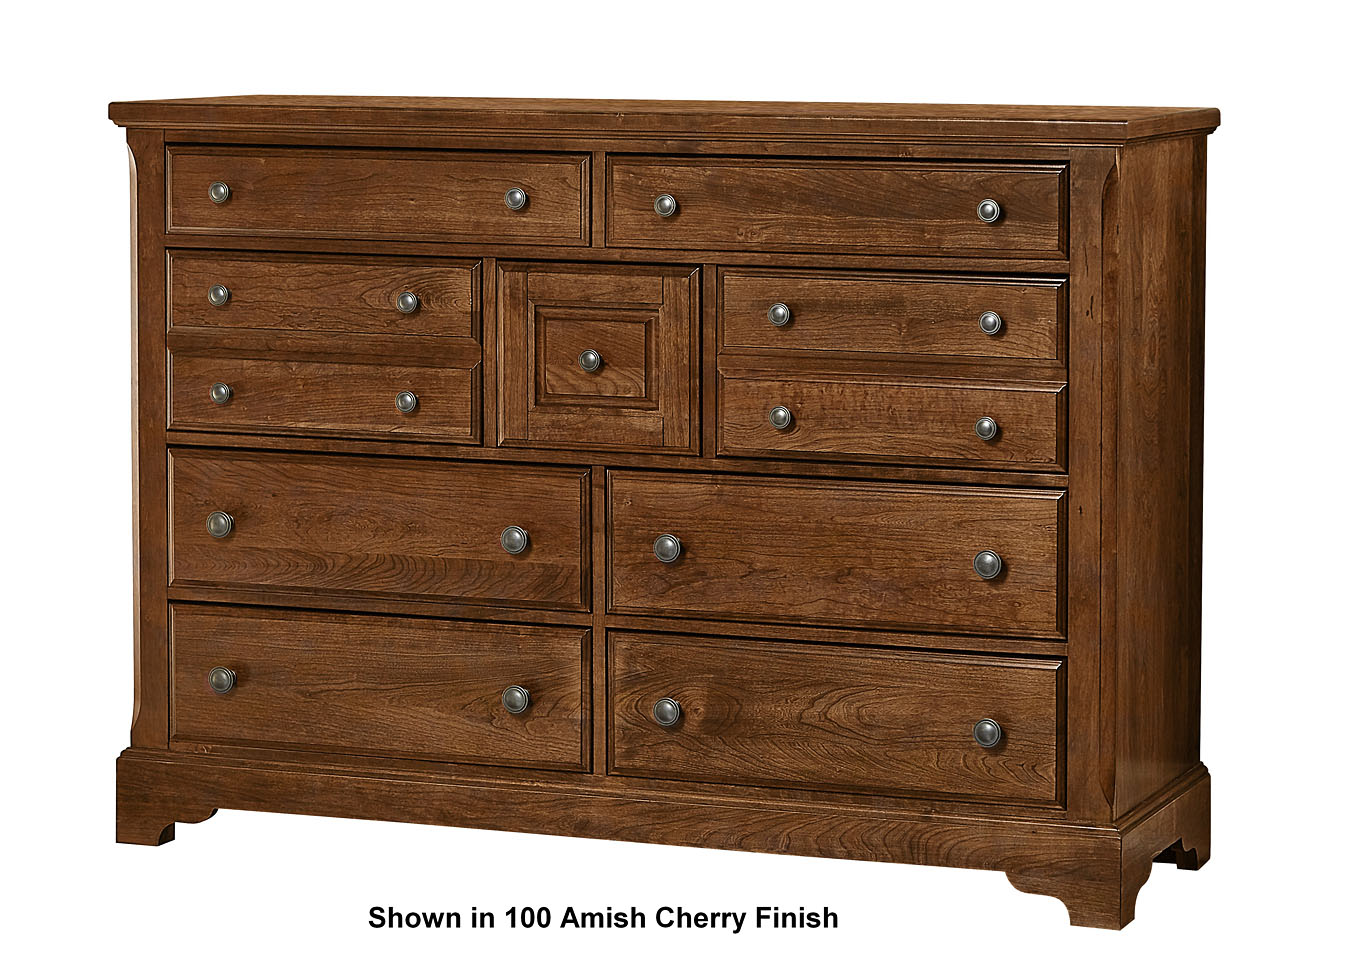 104 - Artisan Choices Dark Cherry Villa Triple Dresser - 9 Drawer,Vaughan-Bassett